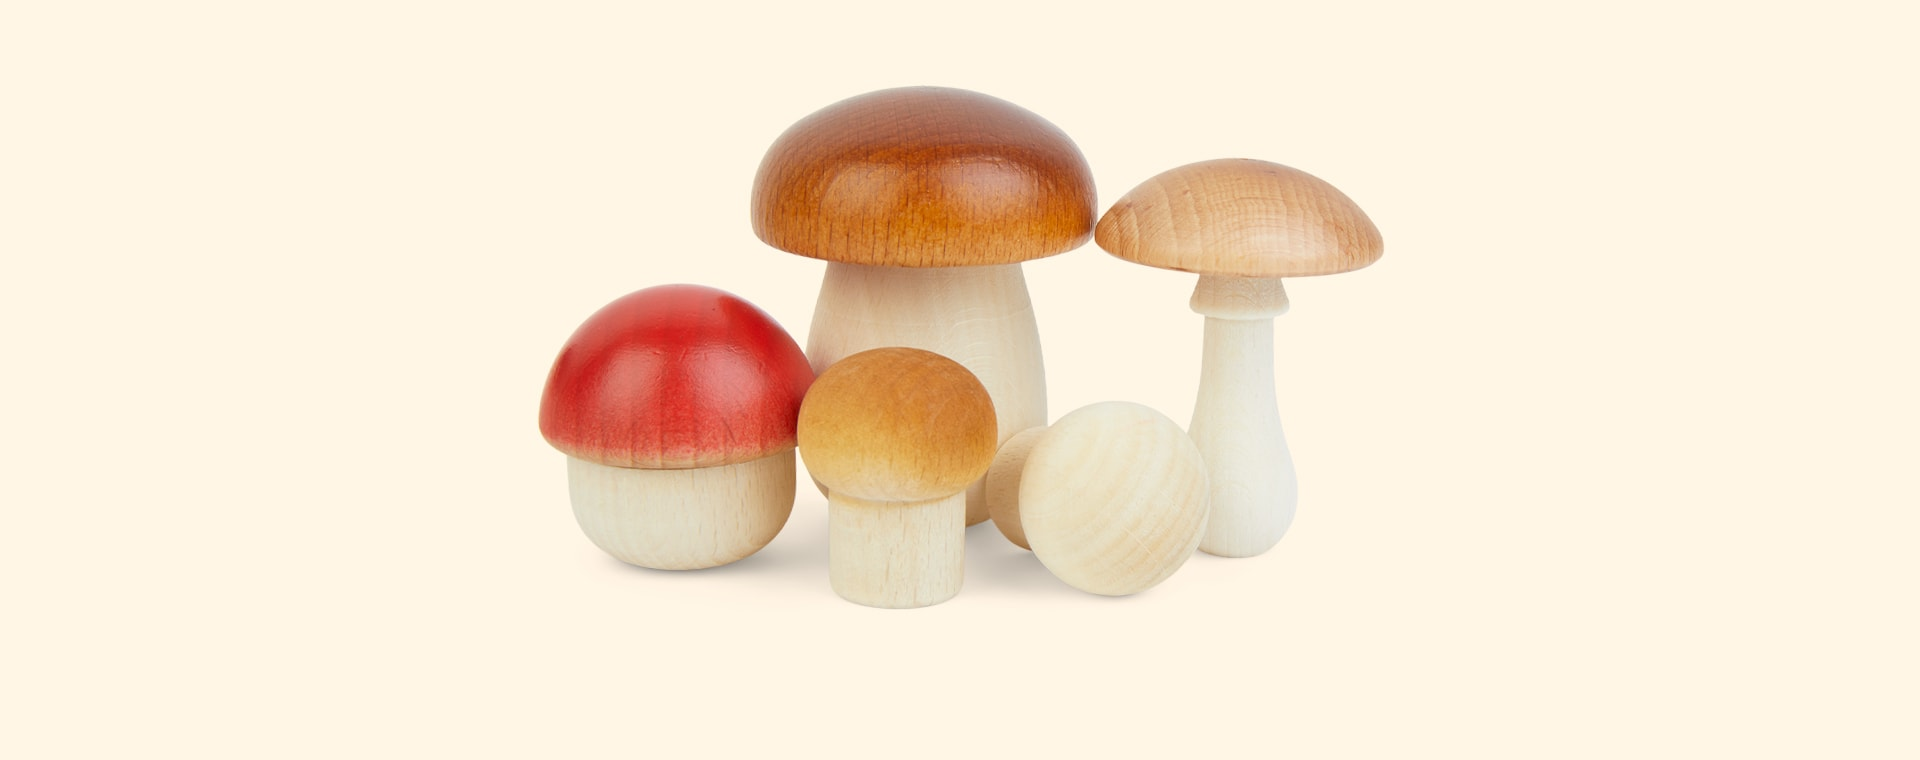 Multi Moon Picnic Forest Mushrooms in a Box